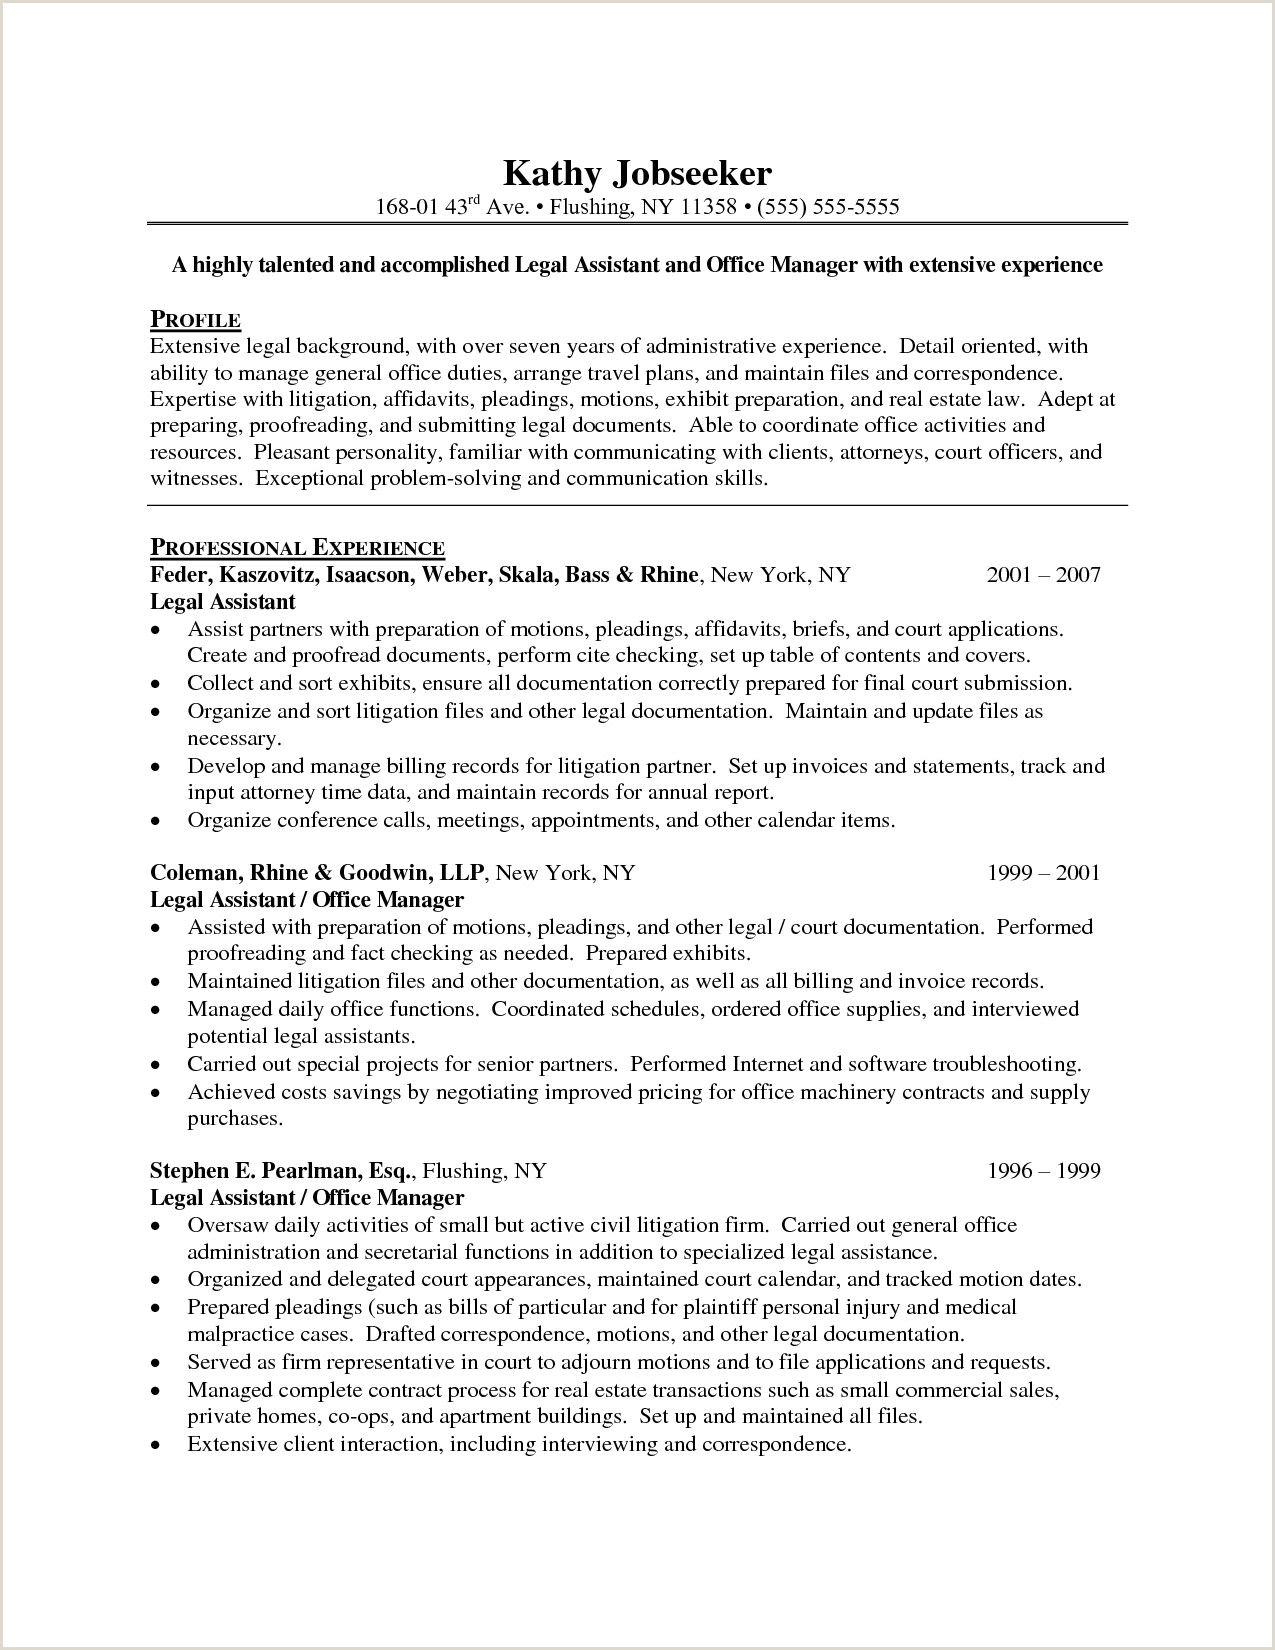 Sample Resume For Legal Assistants Assistant Info